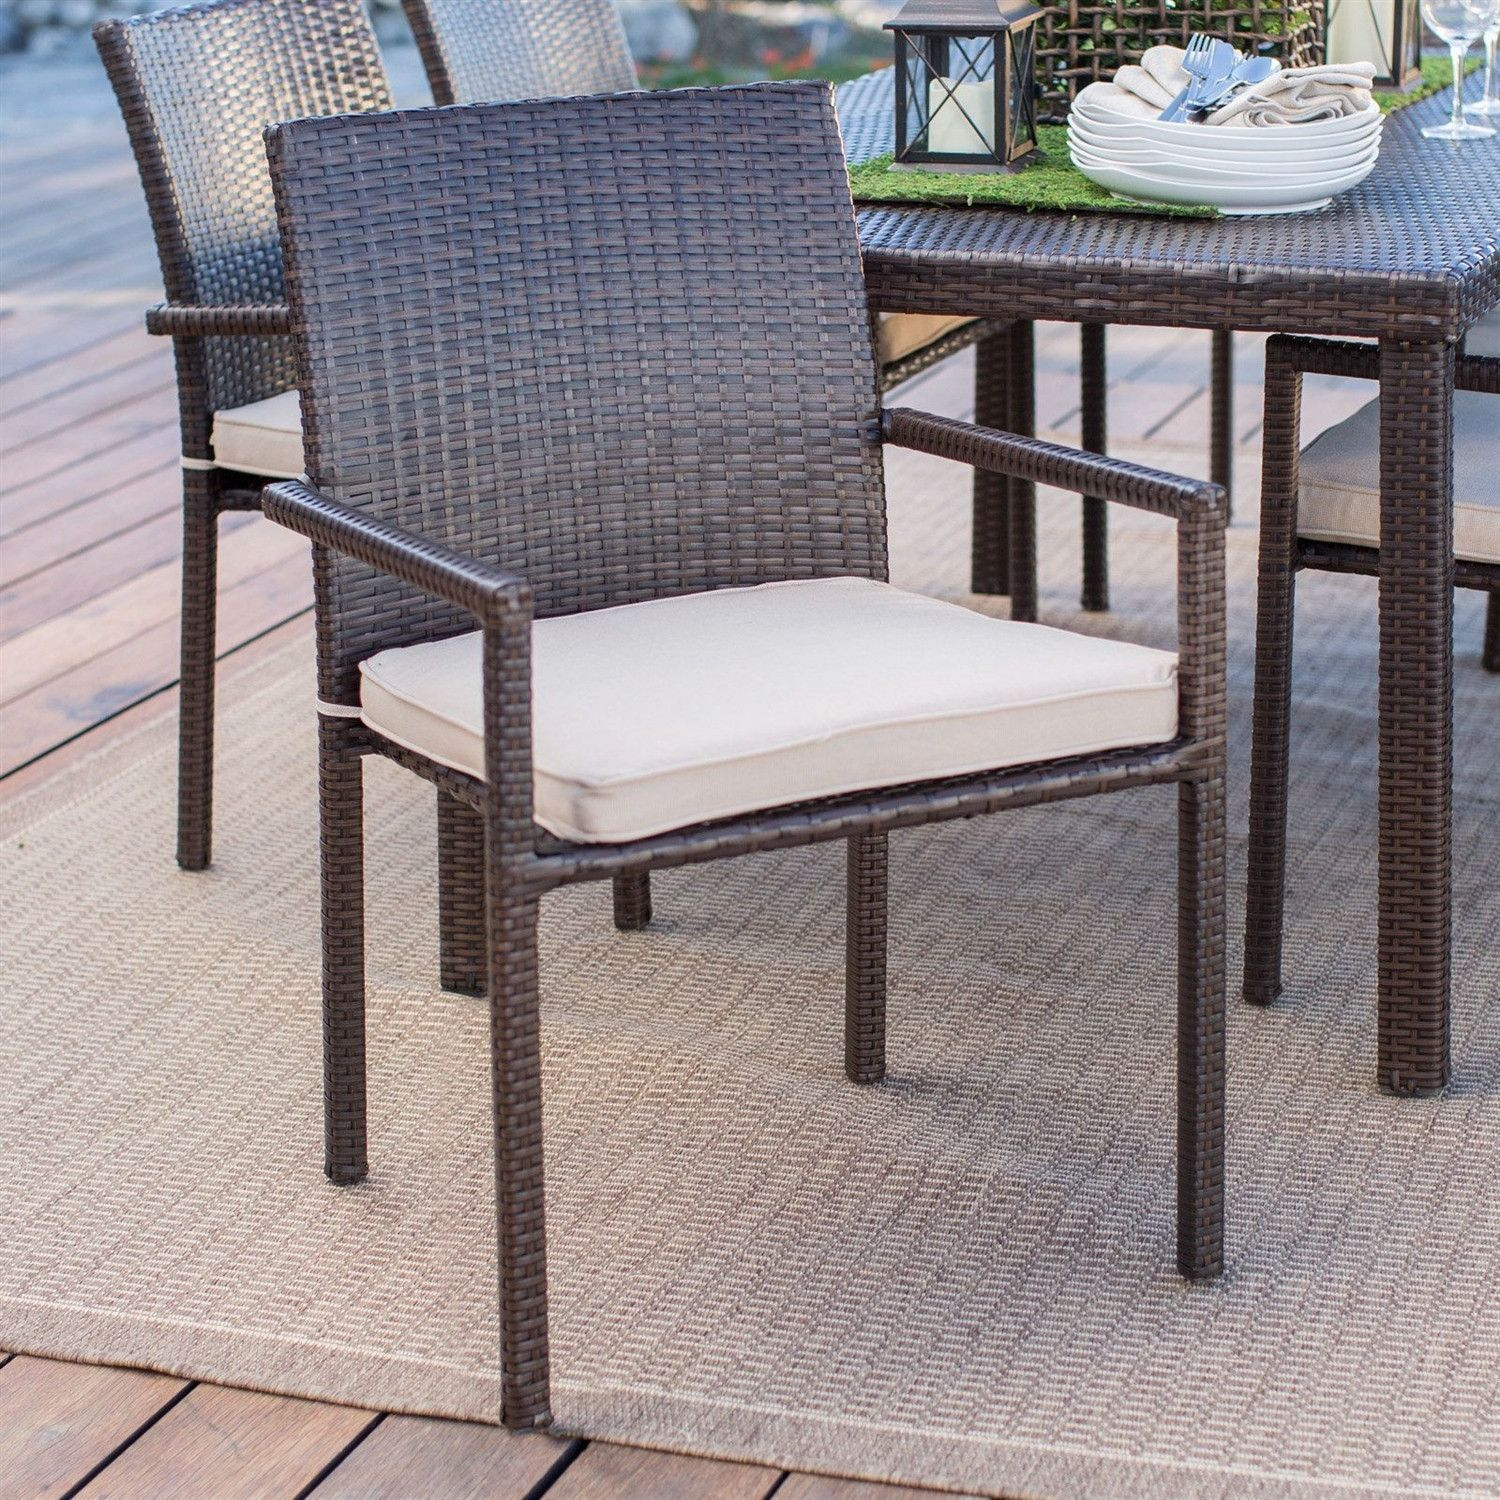 furniture replacement chairs graywhite outdoor grey cushions outdoo slipcover cushion cover resol chair tables seat target set africa south patio wicker gray covers dining